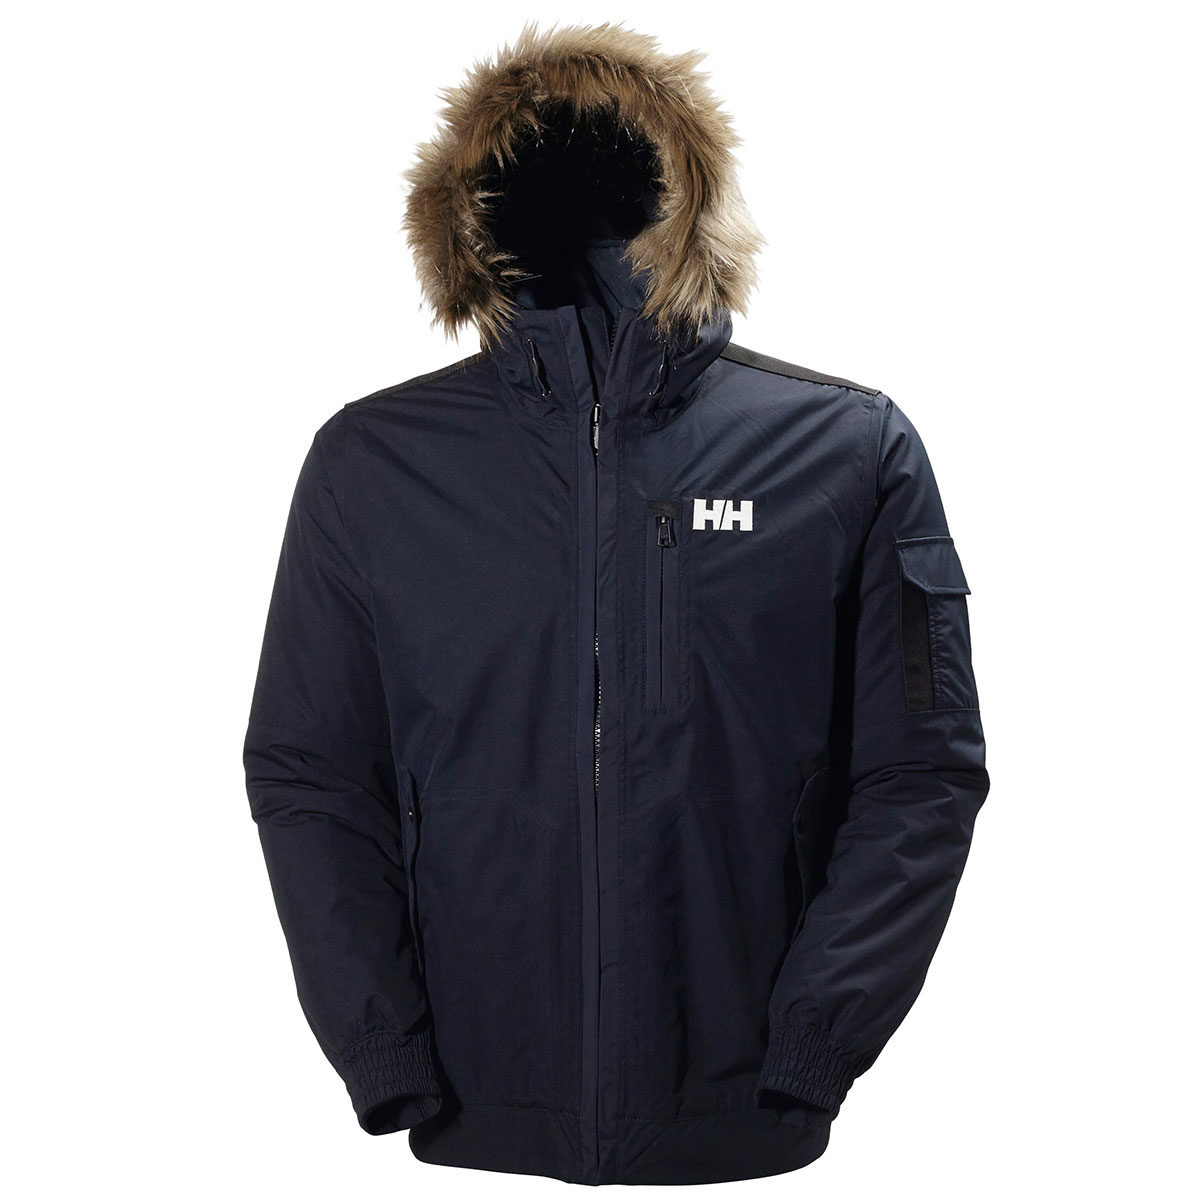 helly hansen 2016 mens dubliner bomber winter outdoor jacket coat ebay. Black Bedroom Furniture Sets. Home Design Ideas